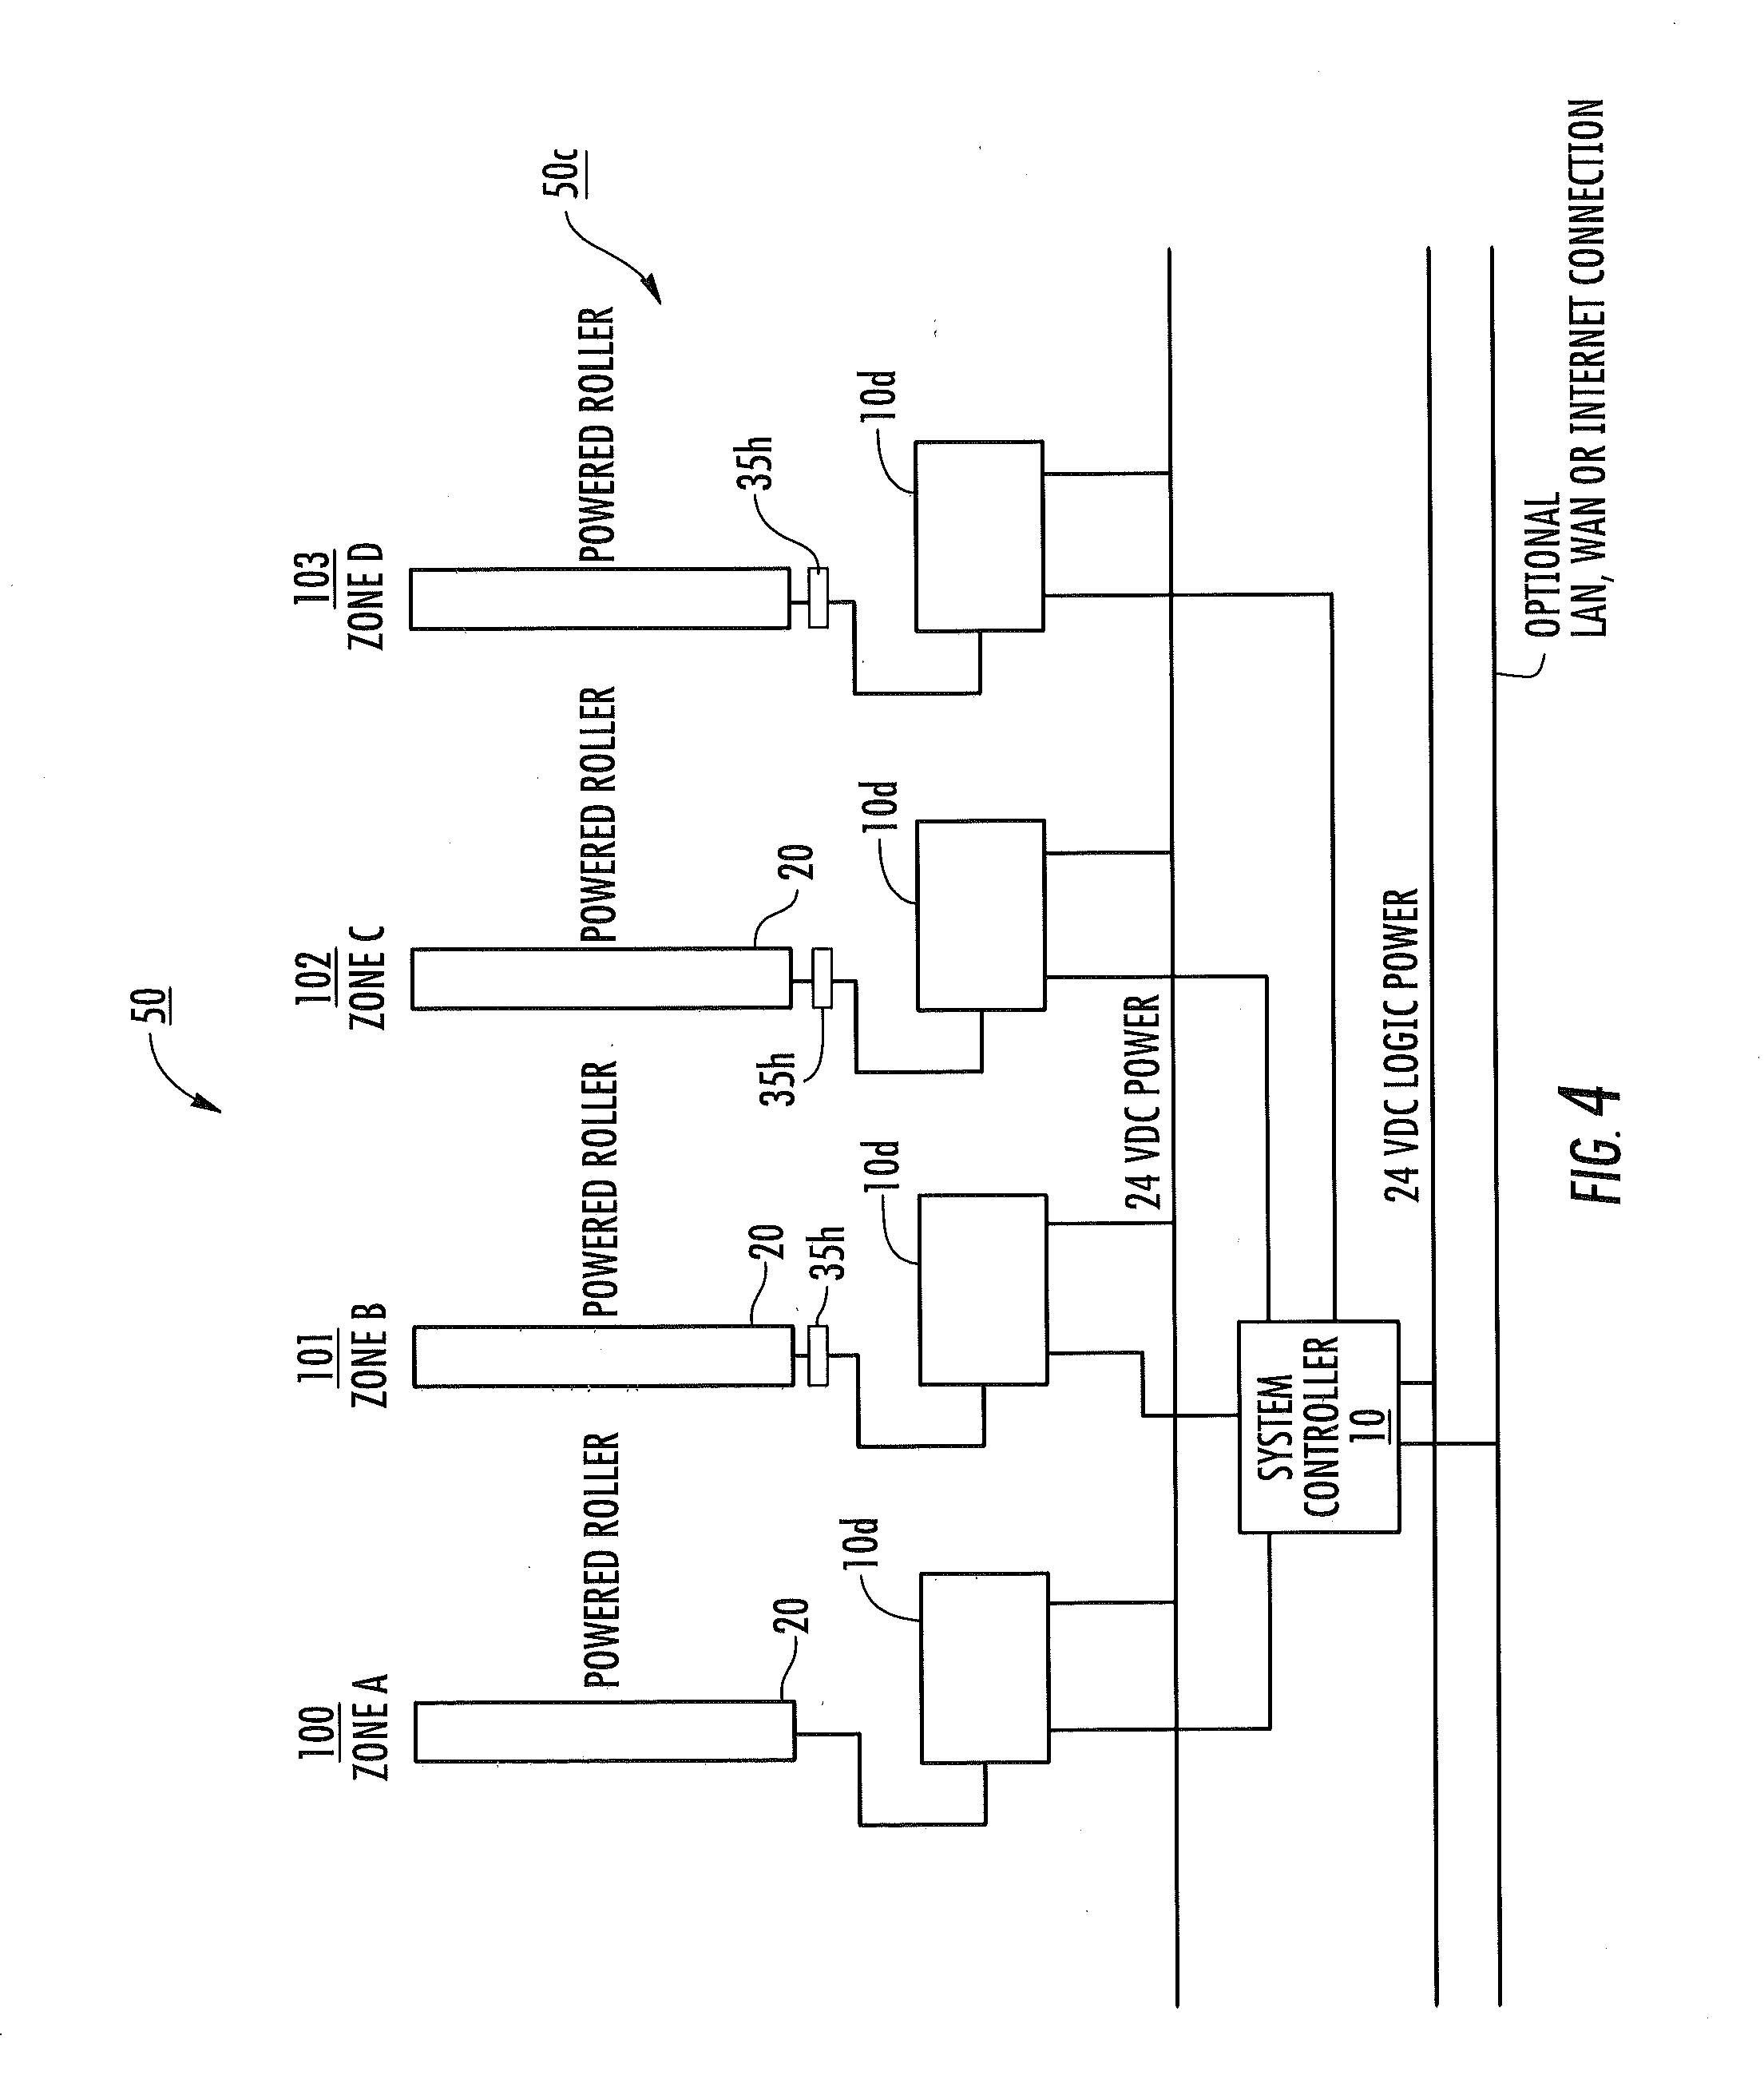 patent us sequential controlled start up for zoned patent drawing